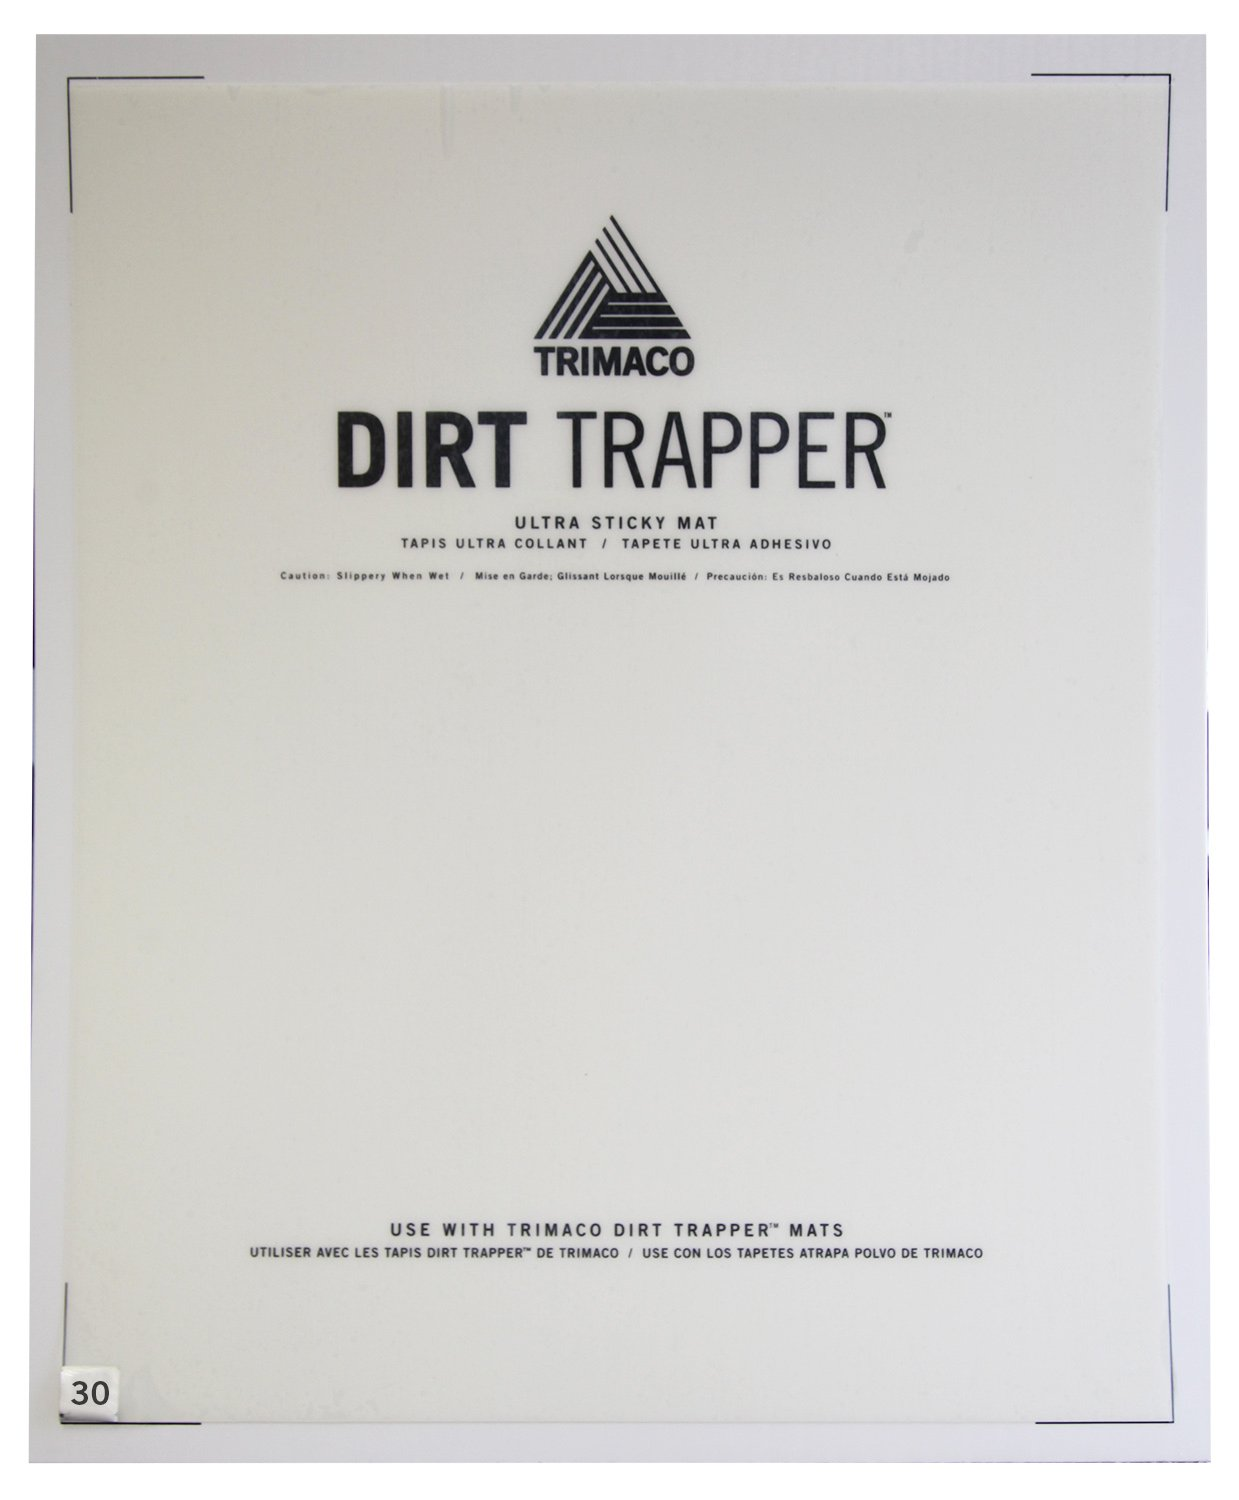 Dirt Trapper Ultra Sticky Mat - 30 layer refill by Trimaco (Image #2)